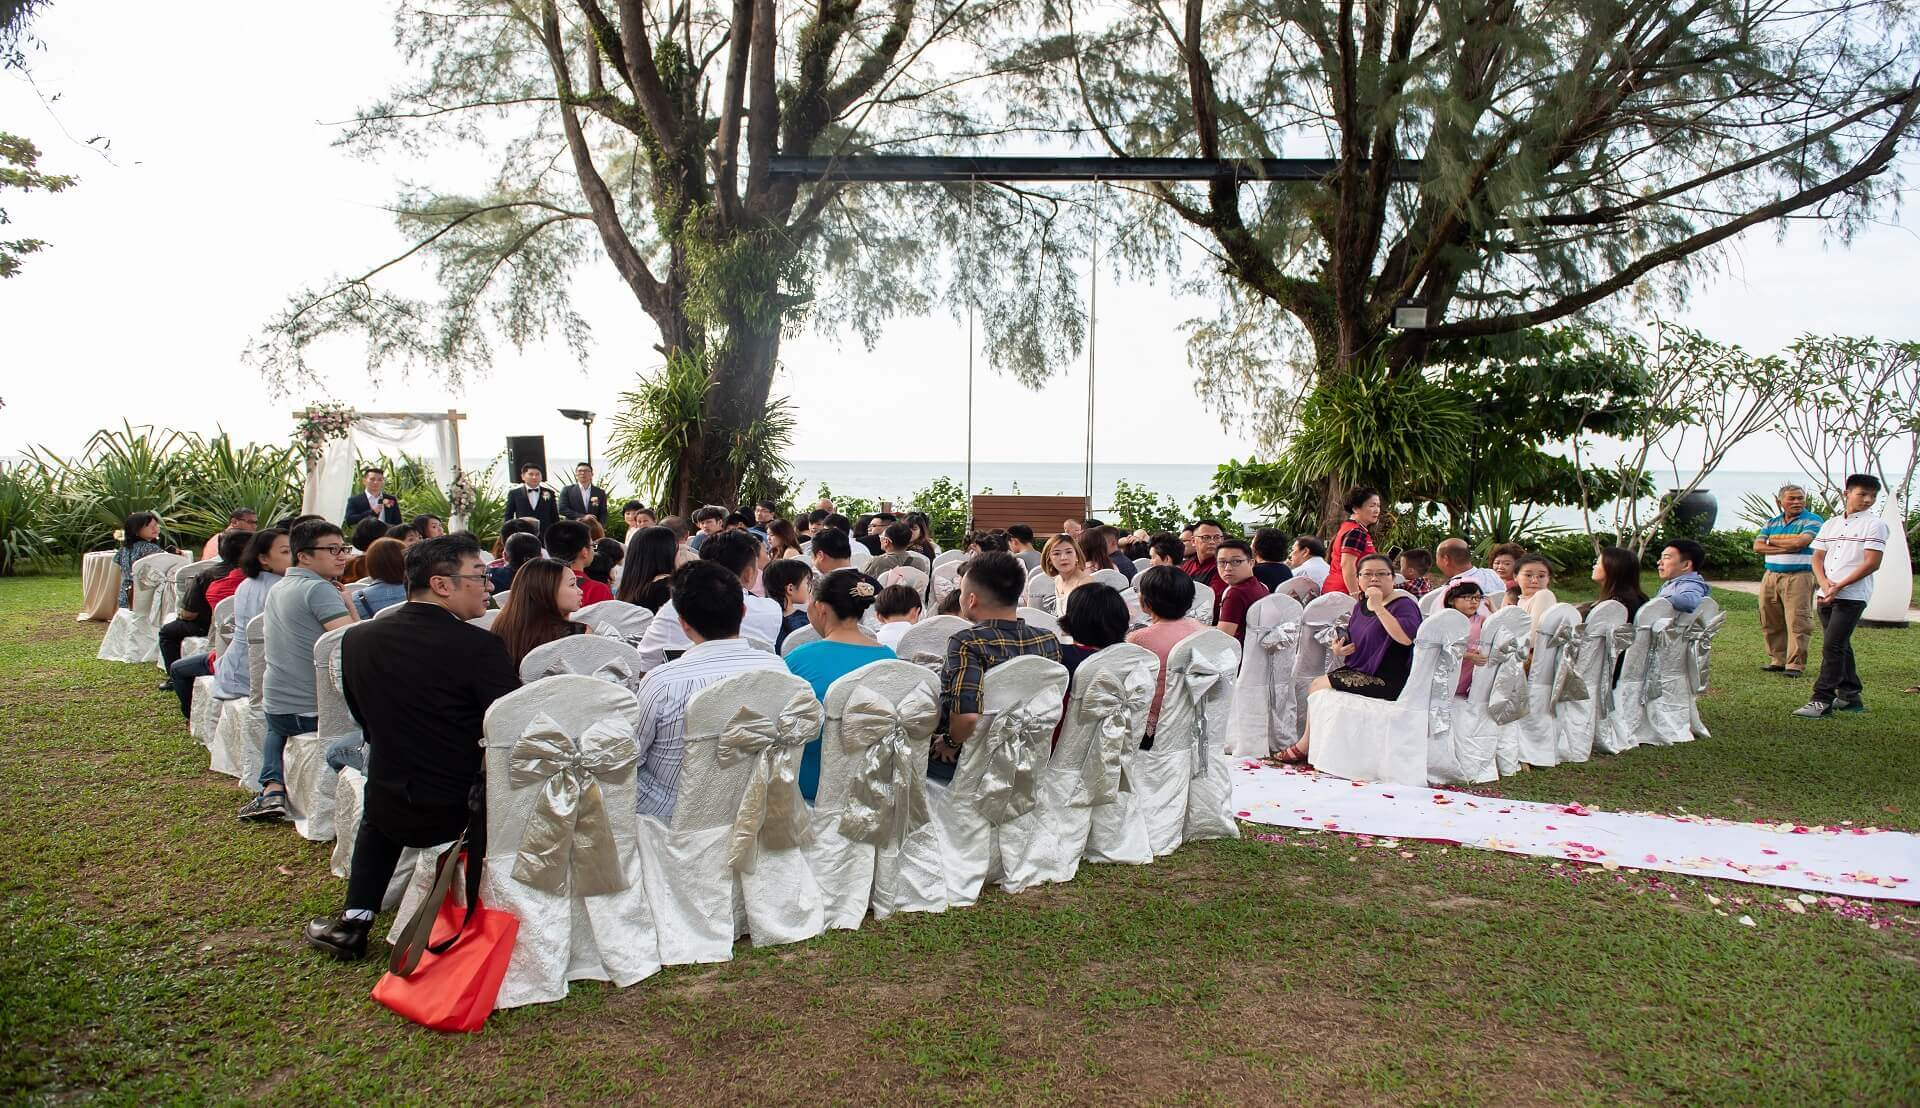 Sugar & Spice Events - Garden Wedding Ceremony at Parkroyal Hotel